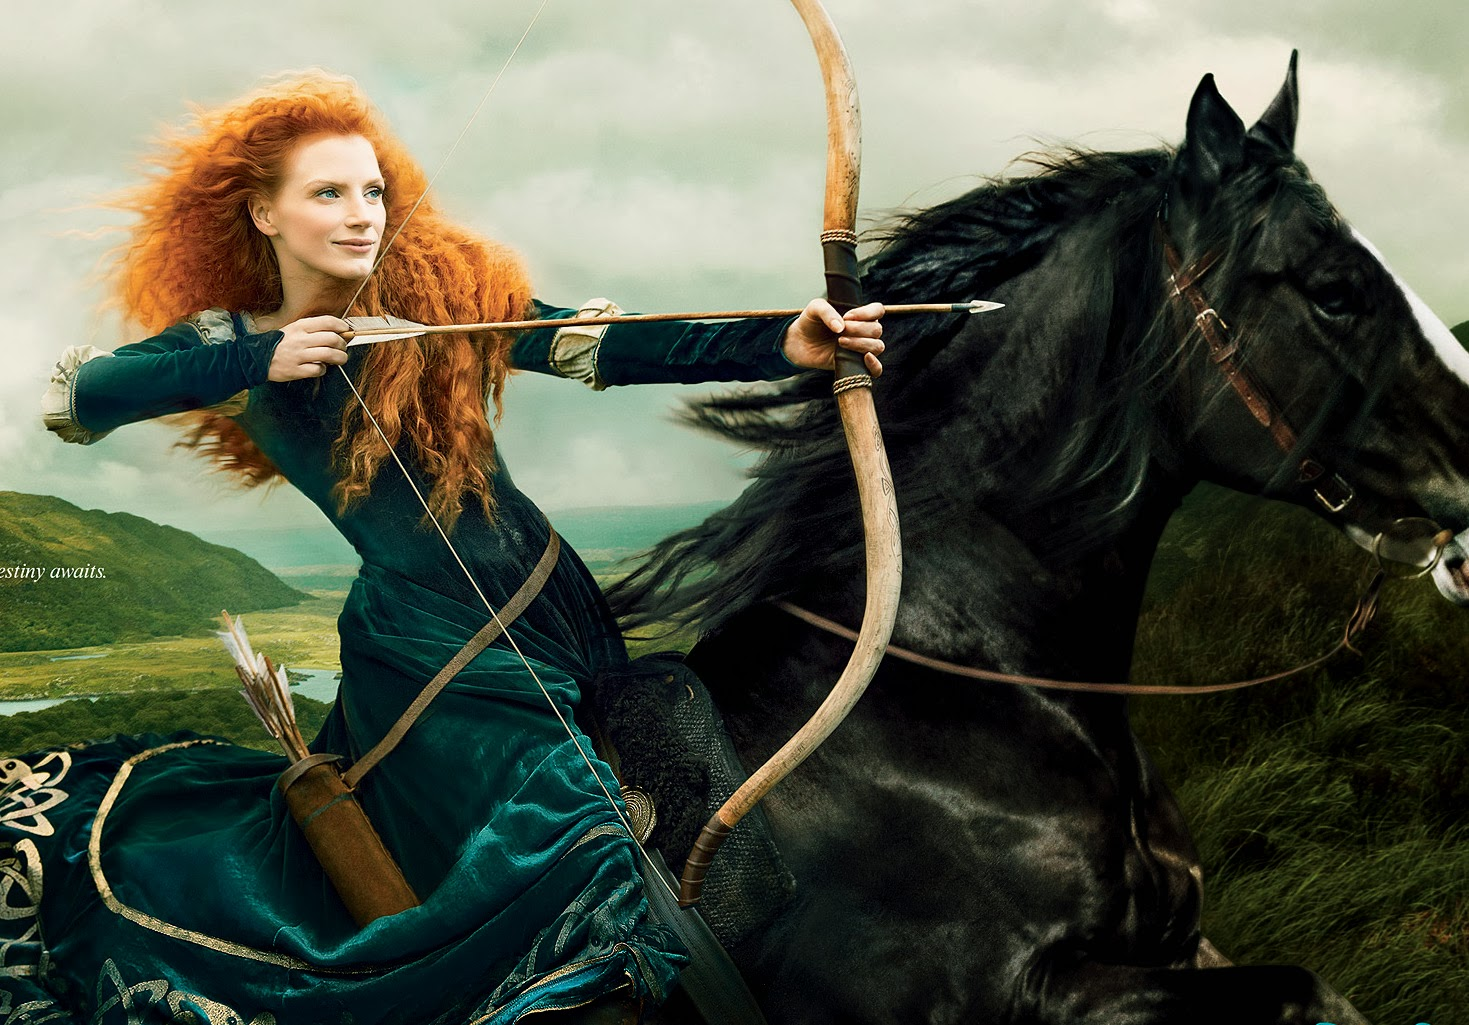 Jessica Chastain is Brave's Princess Merida